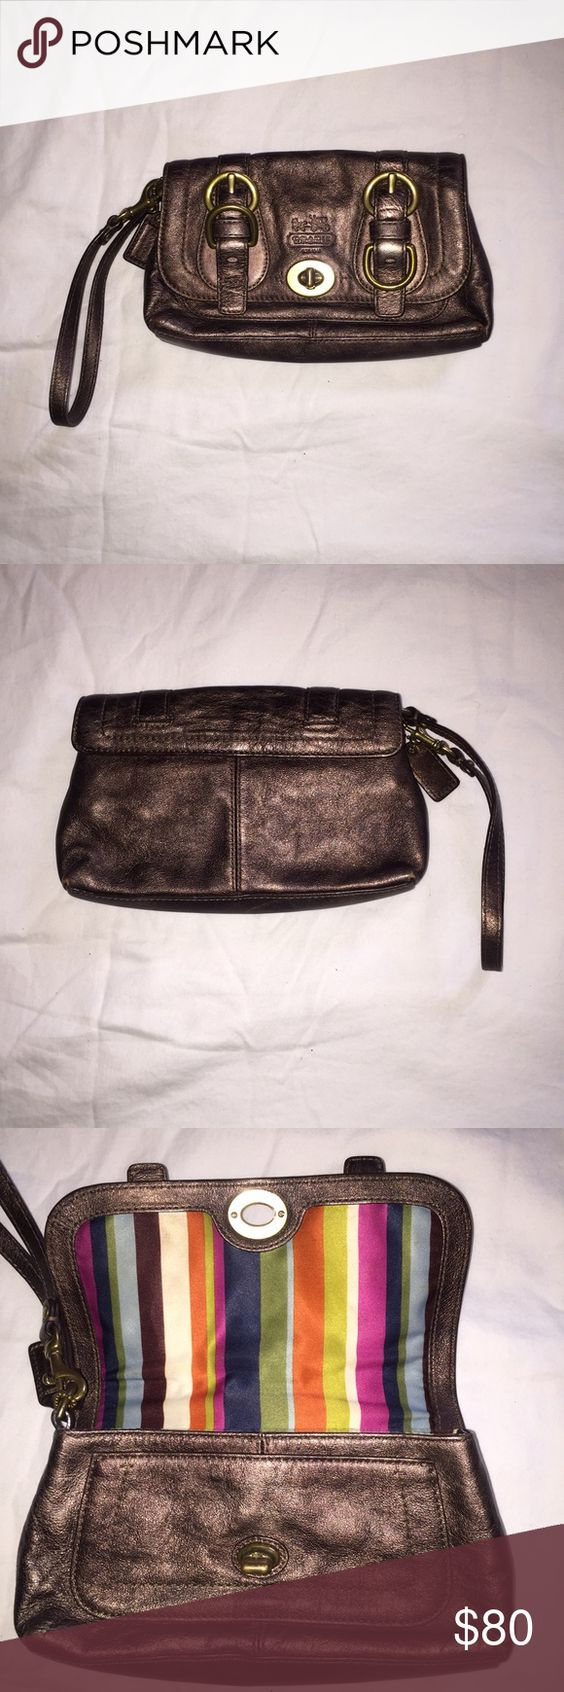 "EUC Coach Bronze Wristlet EUC Coach Bronze Wristlet with traditional satin striped lining.  Only used twice, in excellent condition & can provide more pictures if needed!  Detachable wrist step and Coach tag; size is about 8.5"" long and 5"" tall. Coach Bags Clutches & Wristlets"